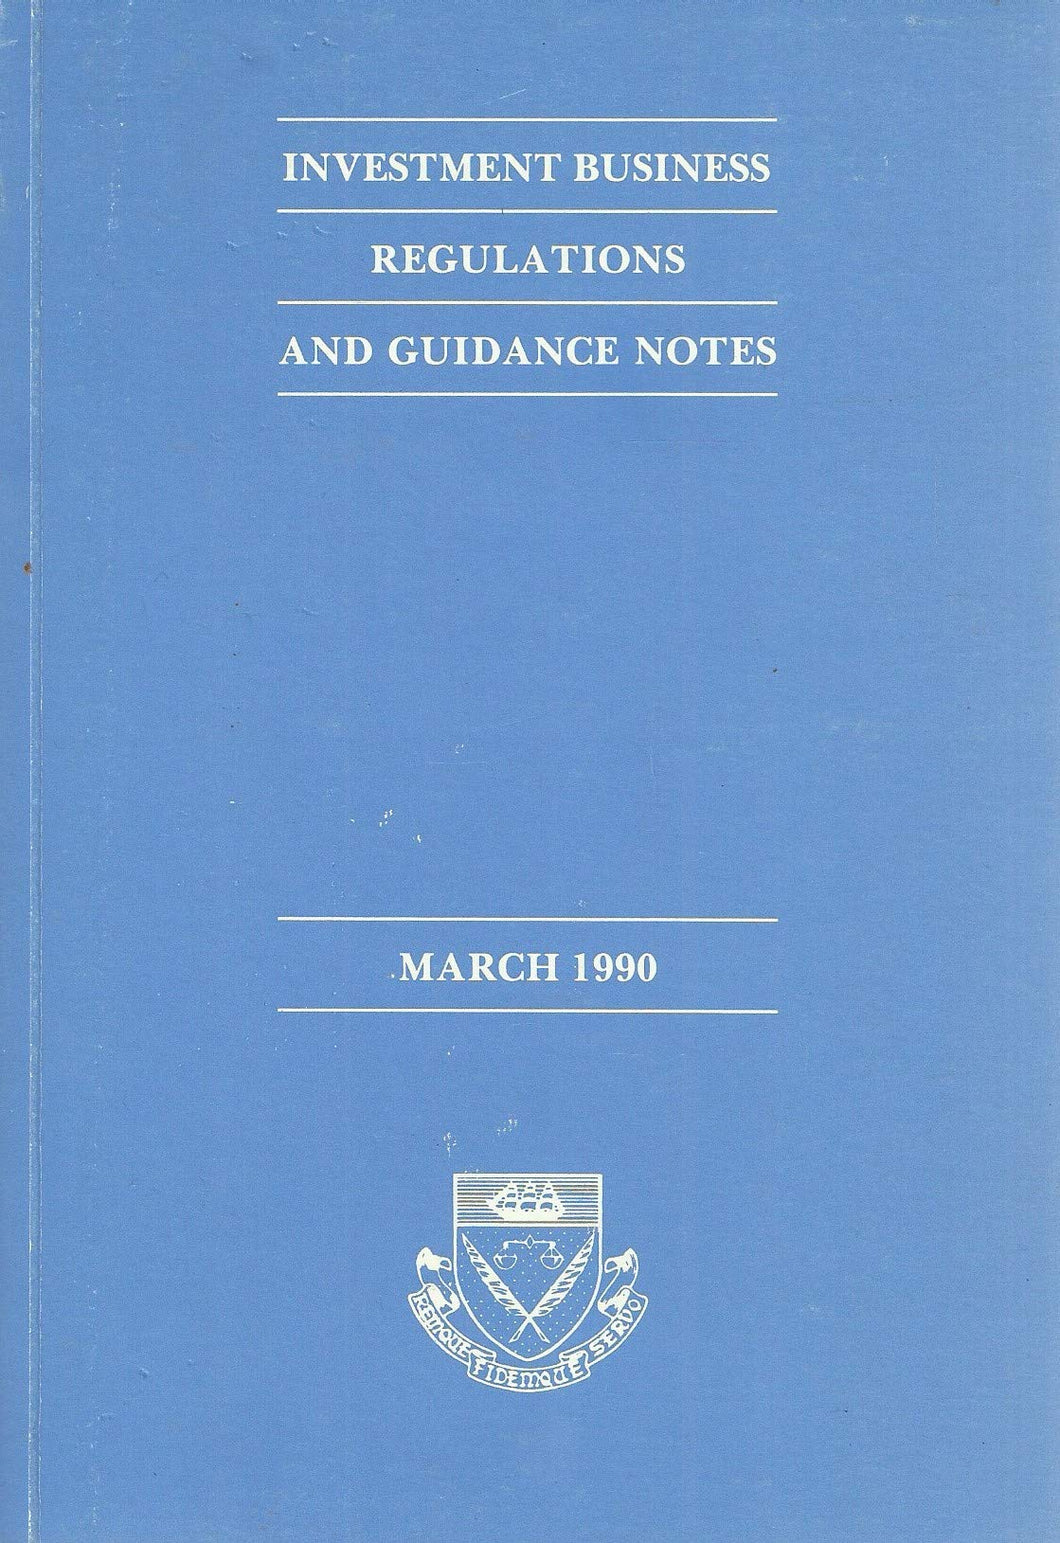 Investment business regulations and guidance notes